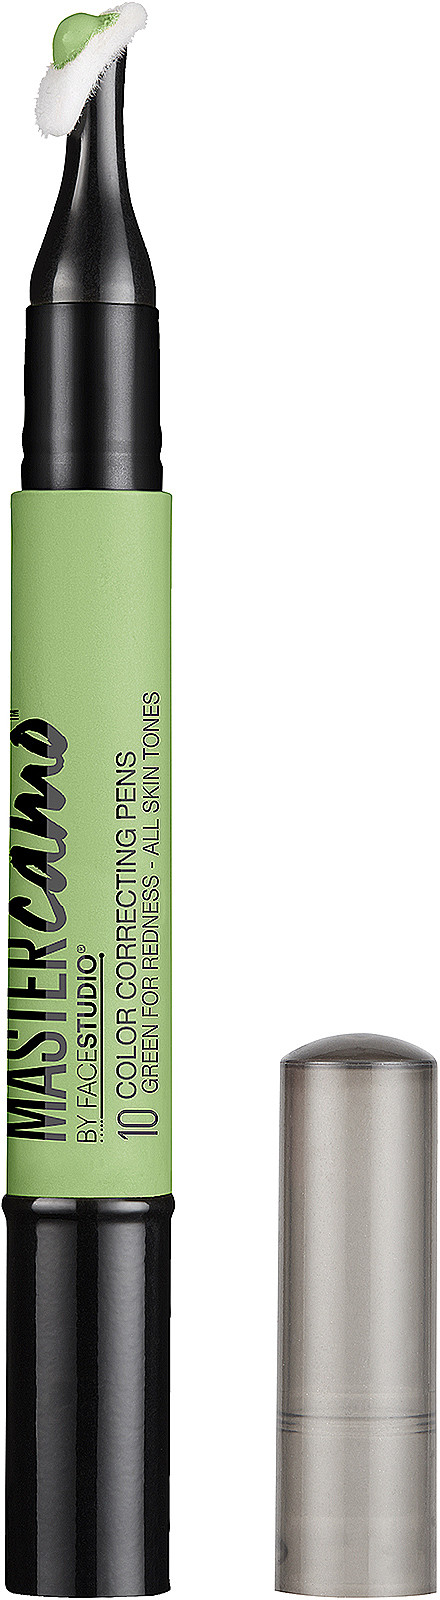 Photoready Color Correcting Pen For Redness by Revlon #15